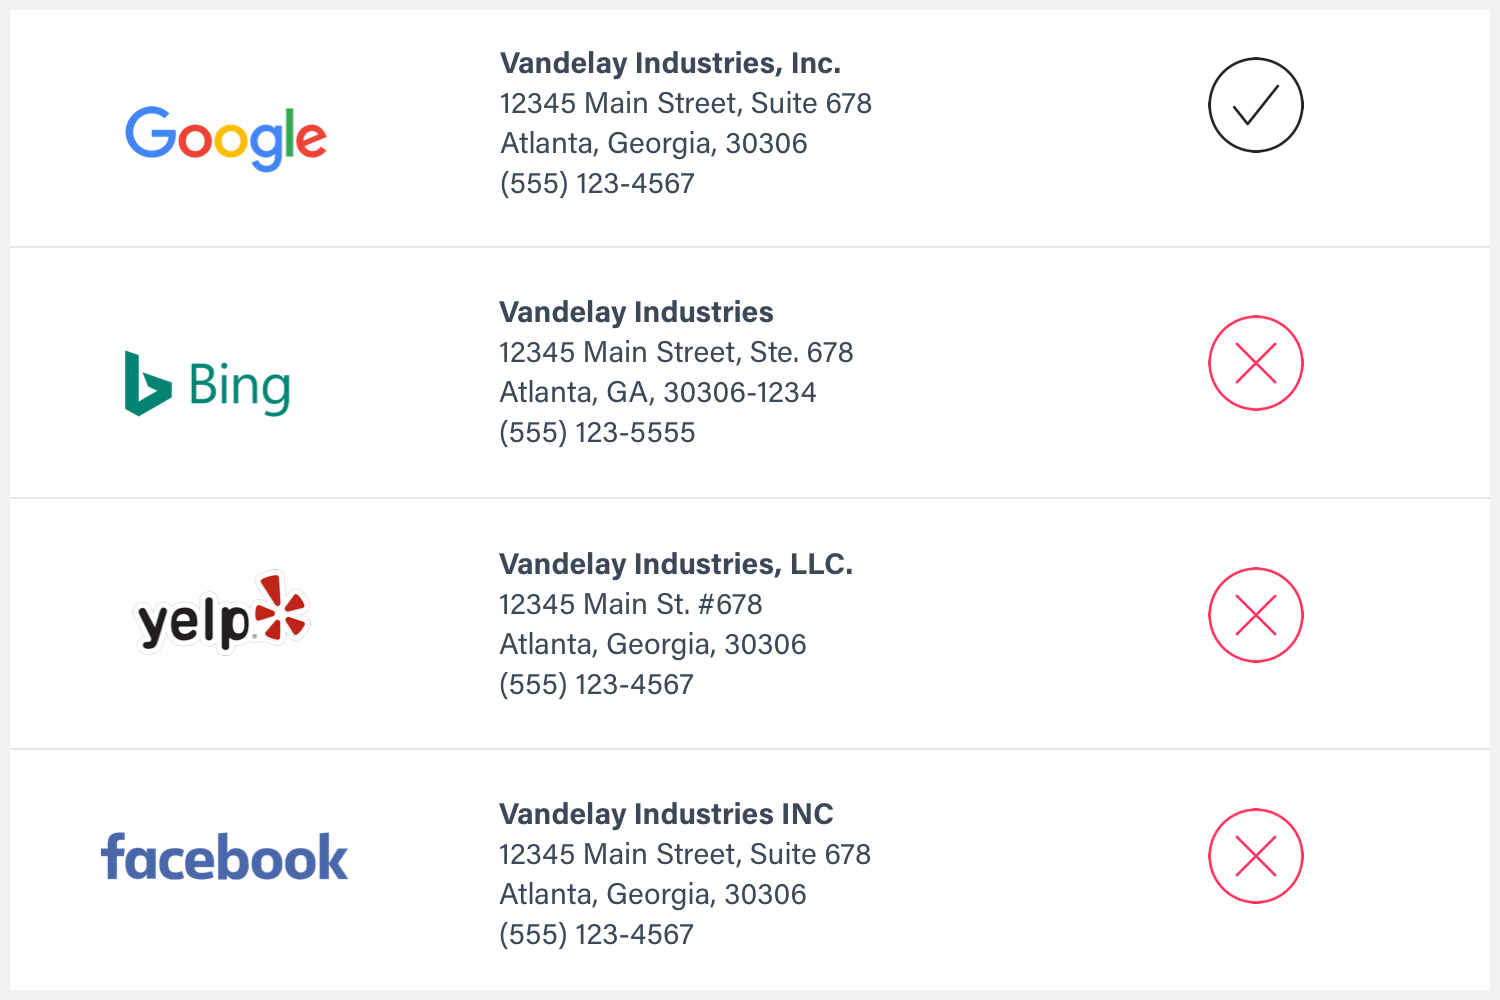 Example of business listings on Google, Bing, Yelp and Facebook.